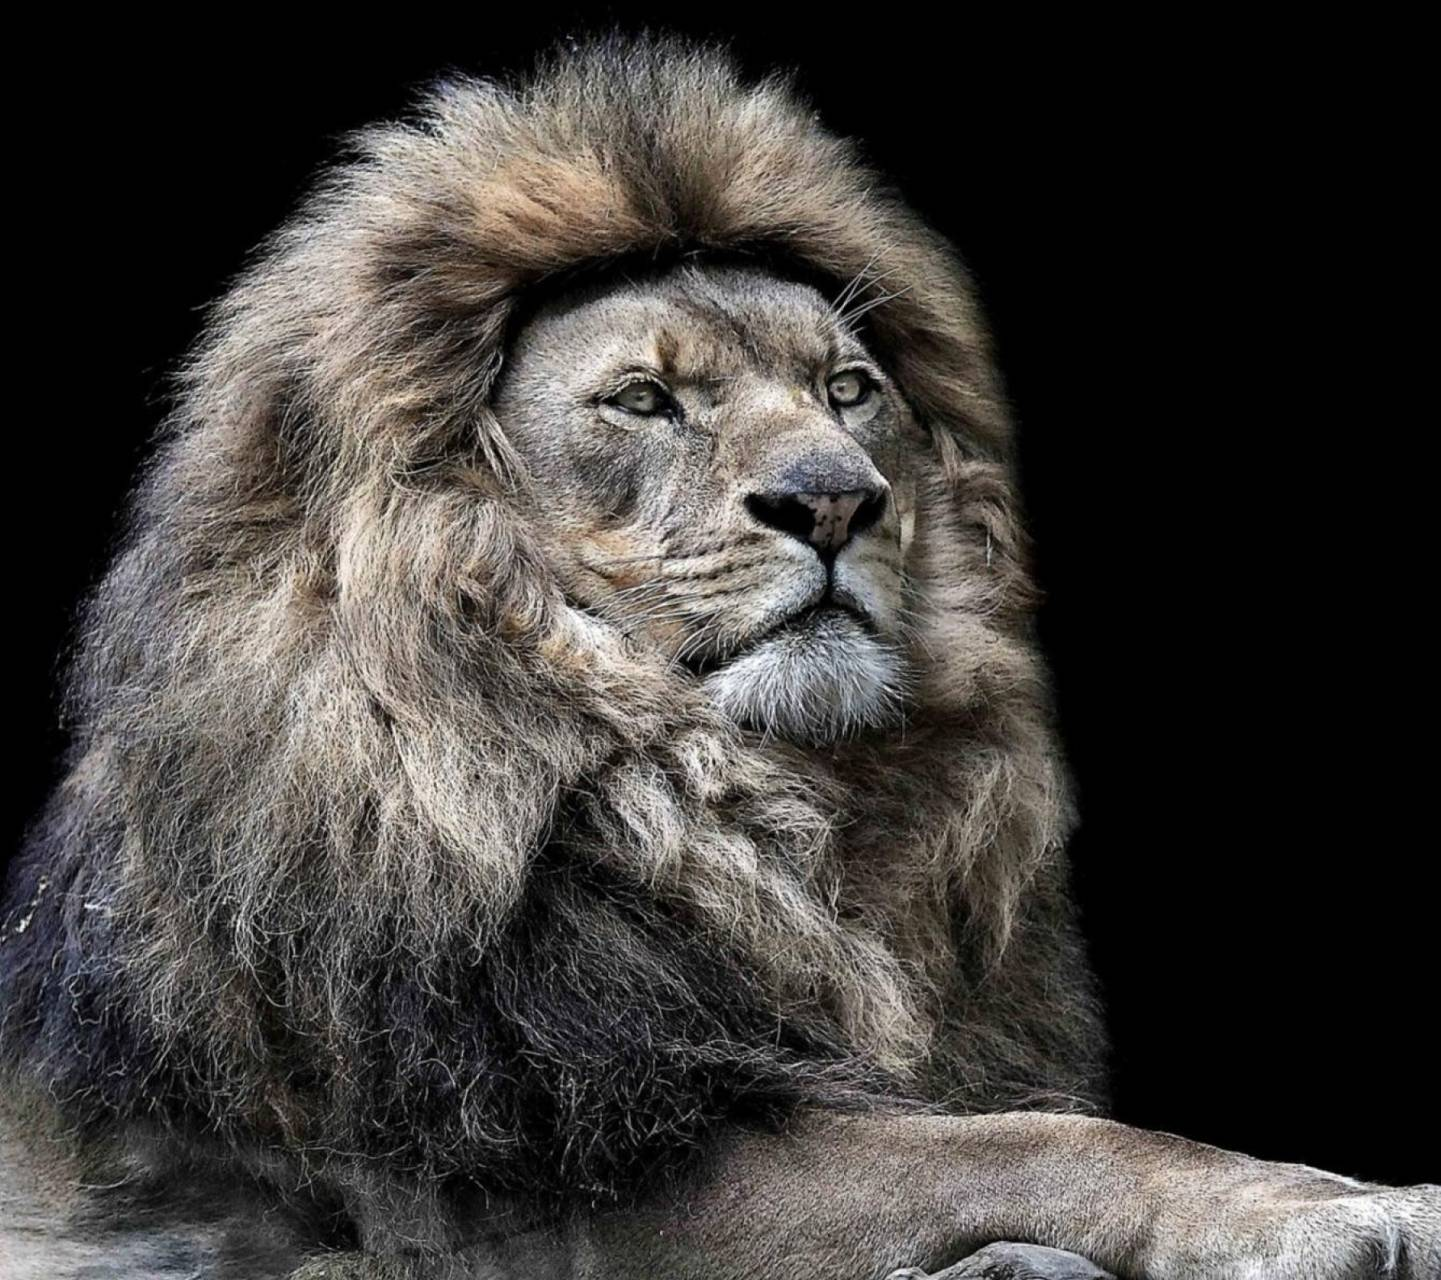 Majestic Lion Wallpaper By Sphinxlars 09 Free On Zedge